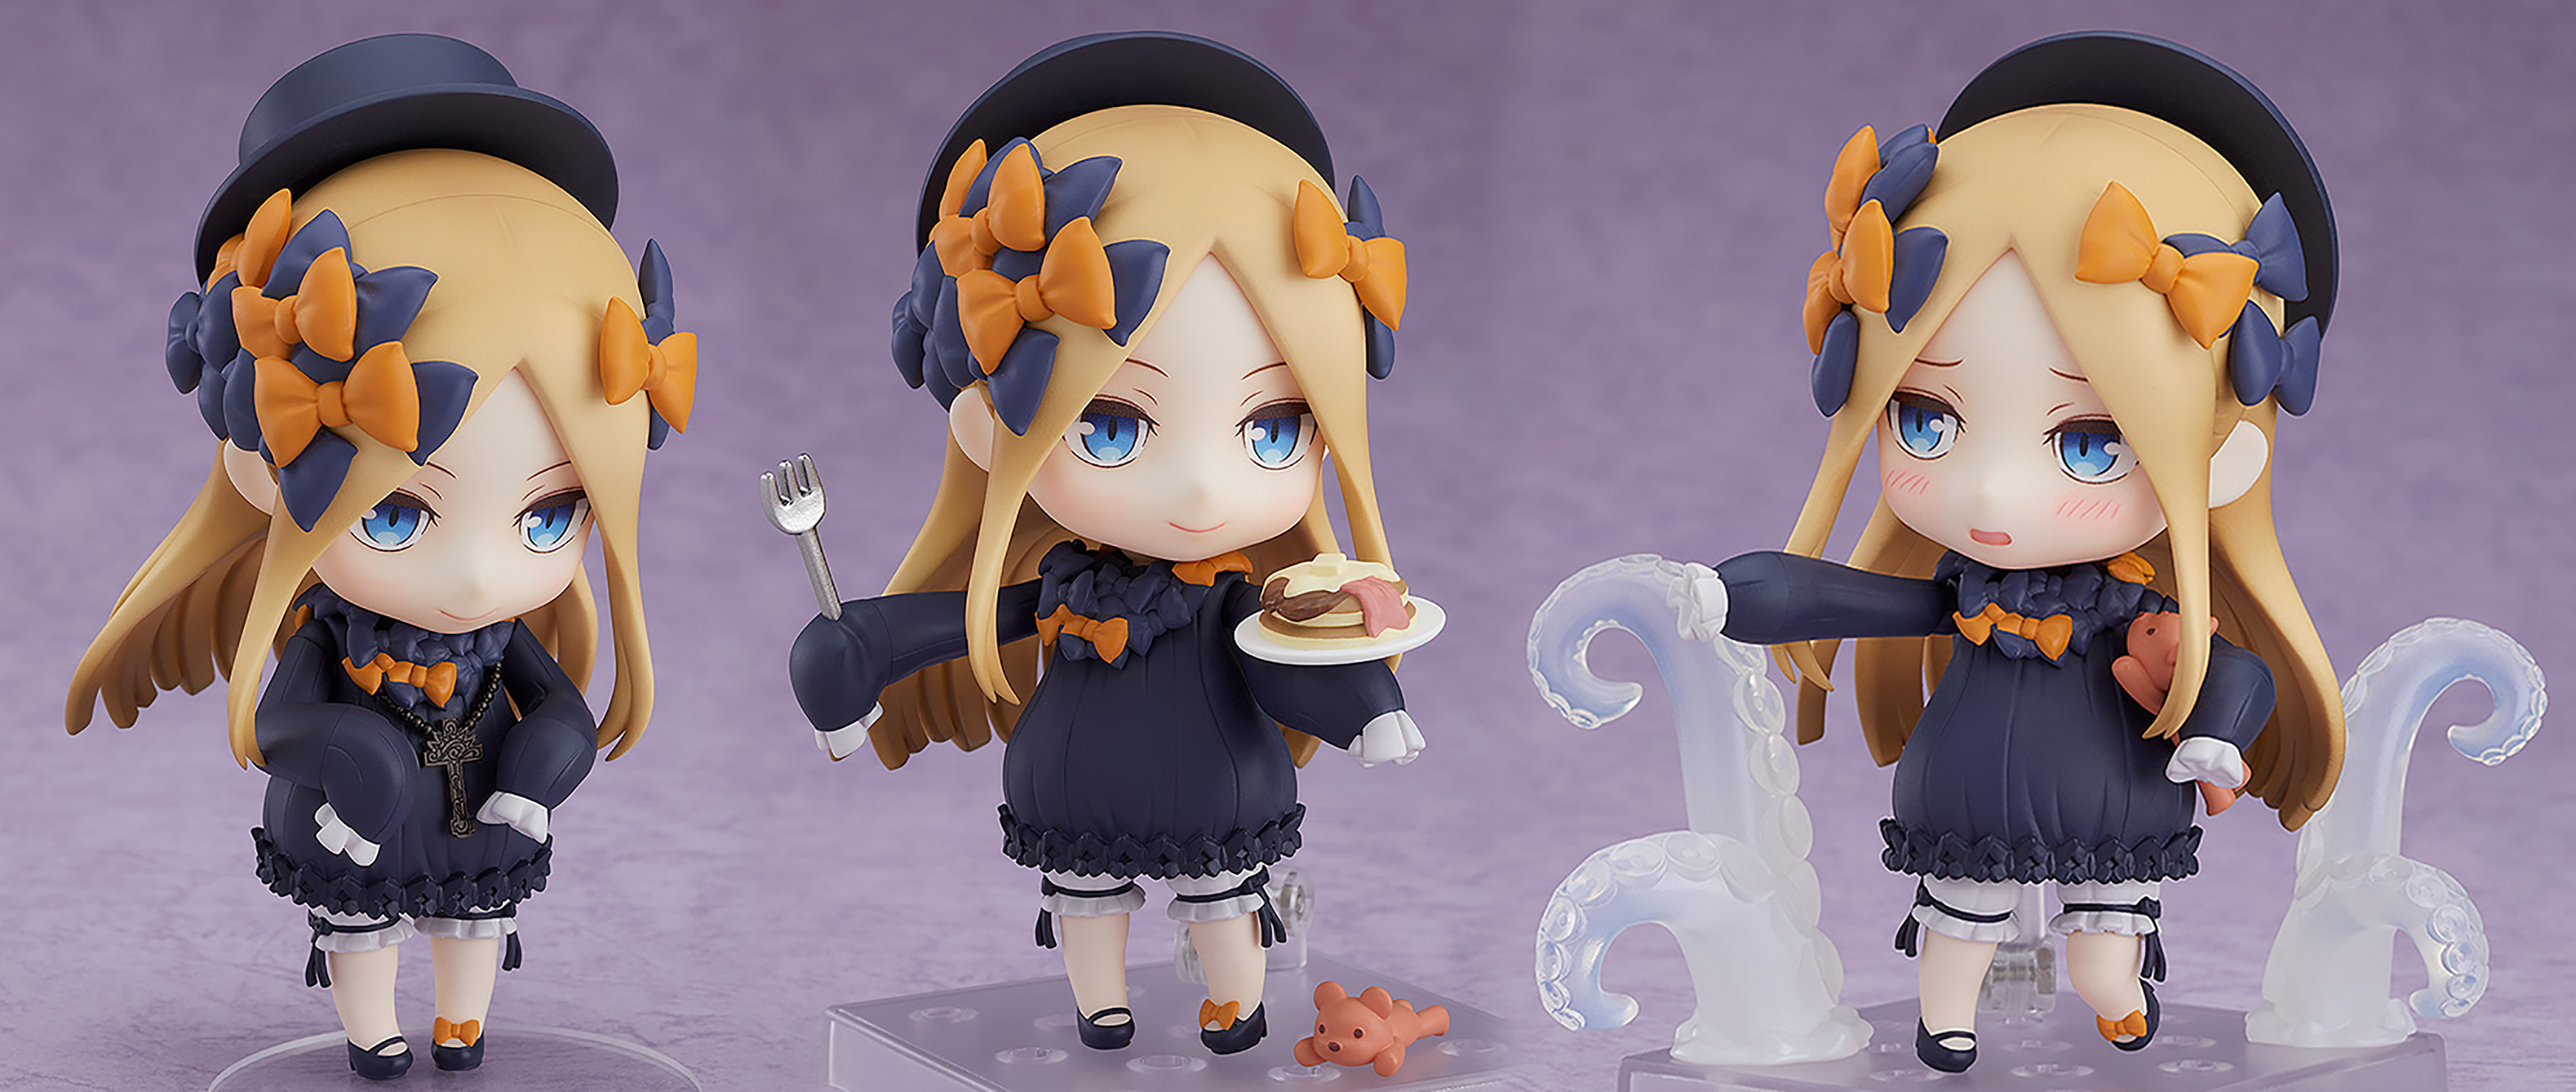 FATE GRAND ORDER FOREIGNER ABIGAIL WILLIAMS NENDOROID AF